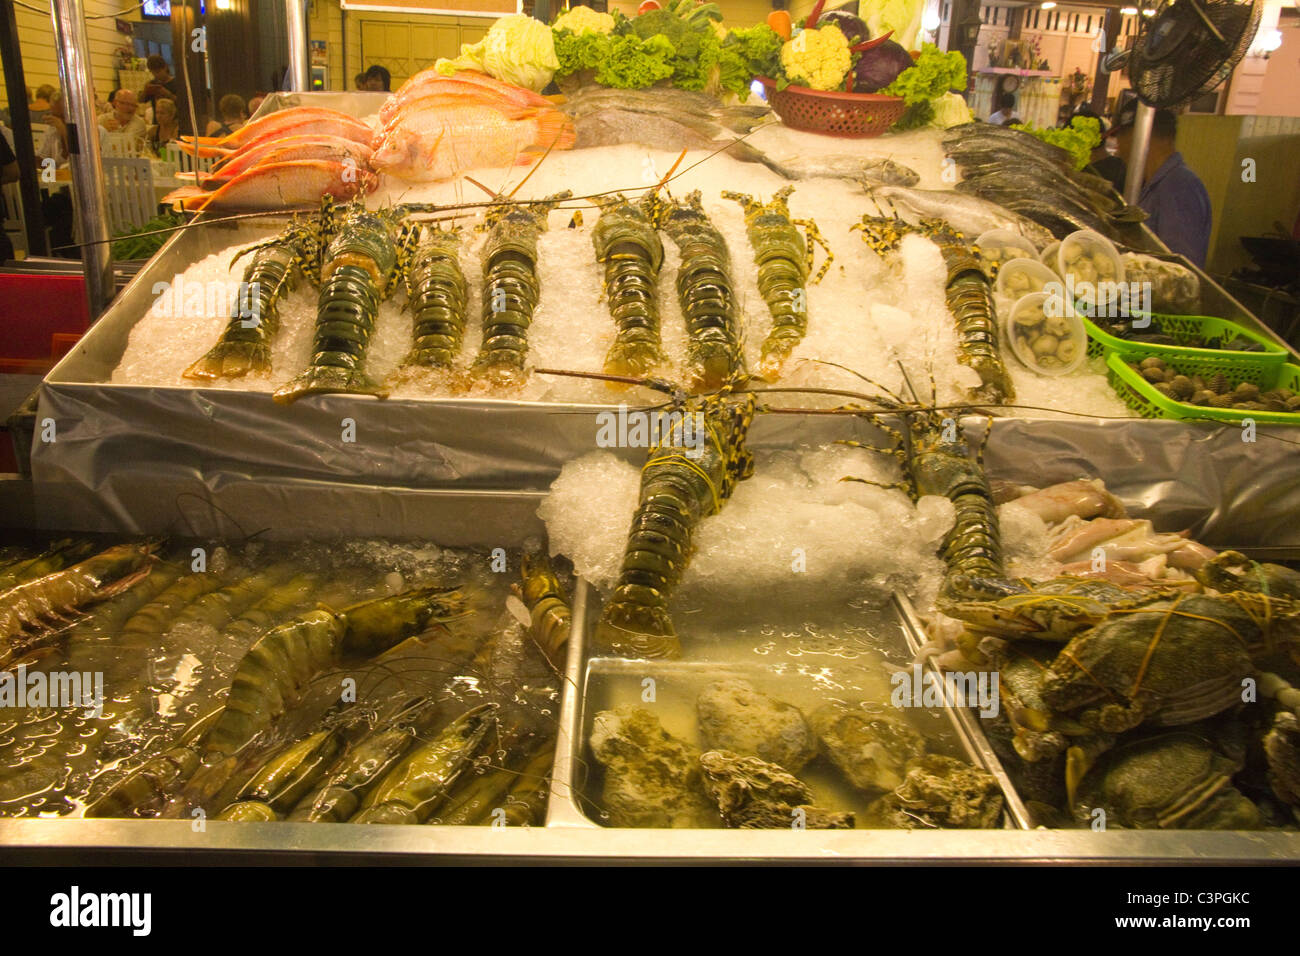 Fresh Lobsters, Crustaceans, and fish - Stock Image